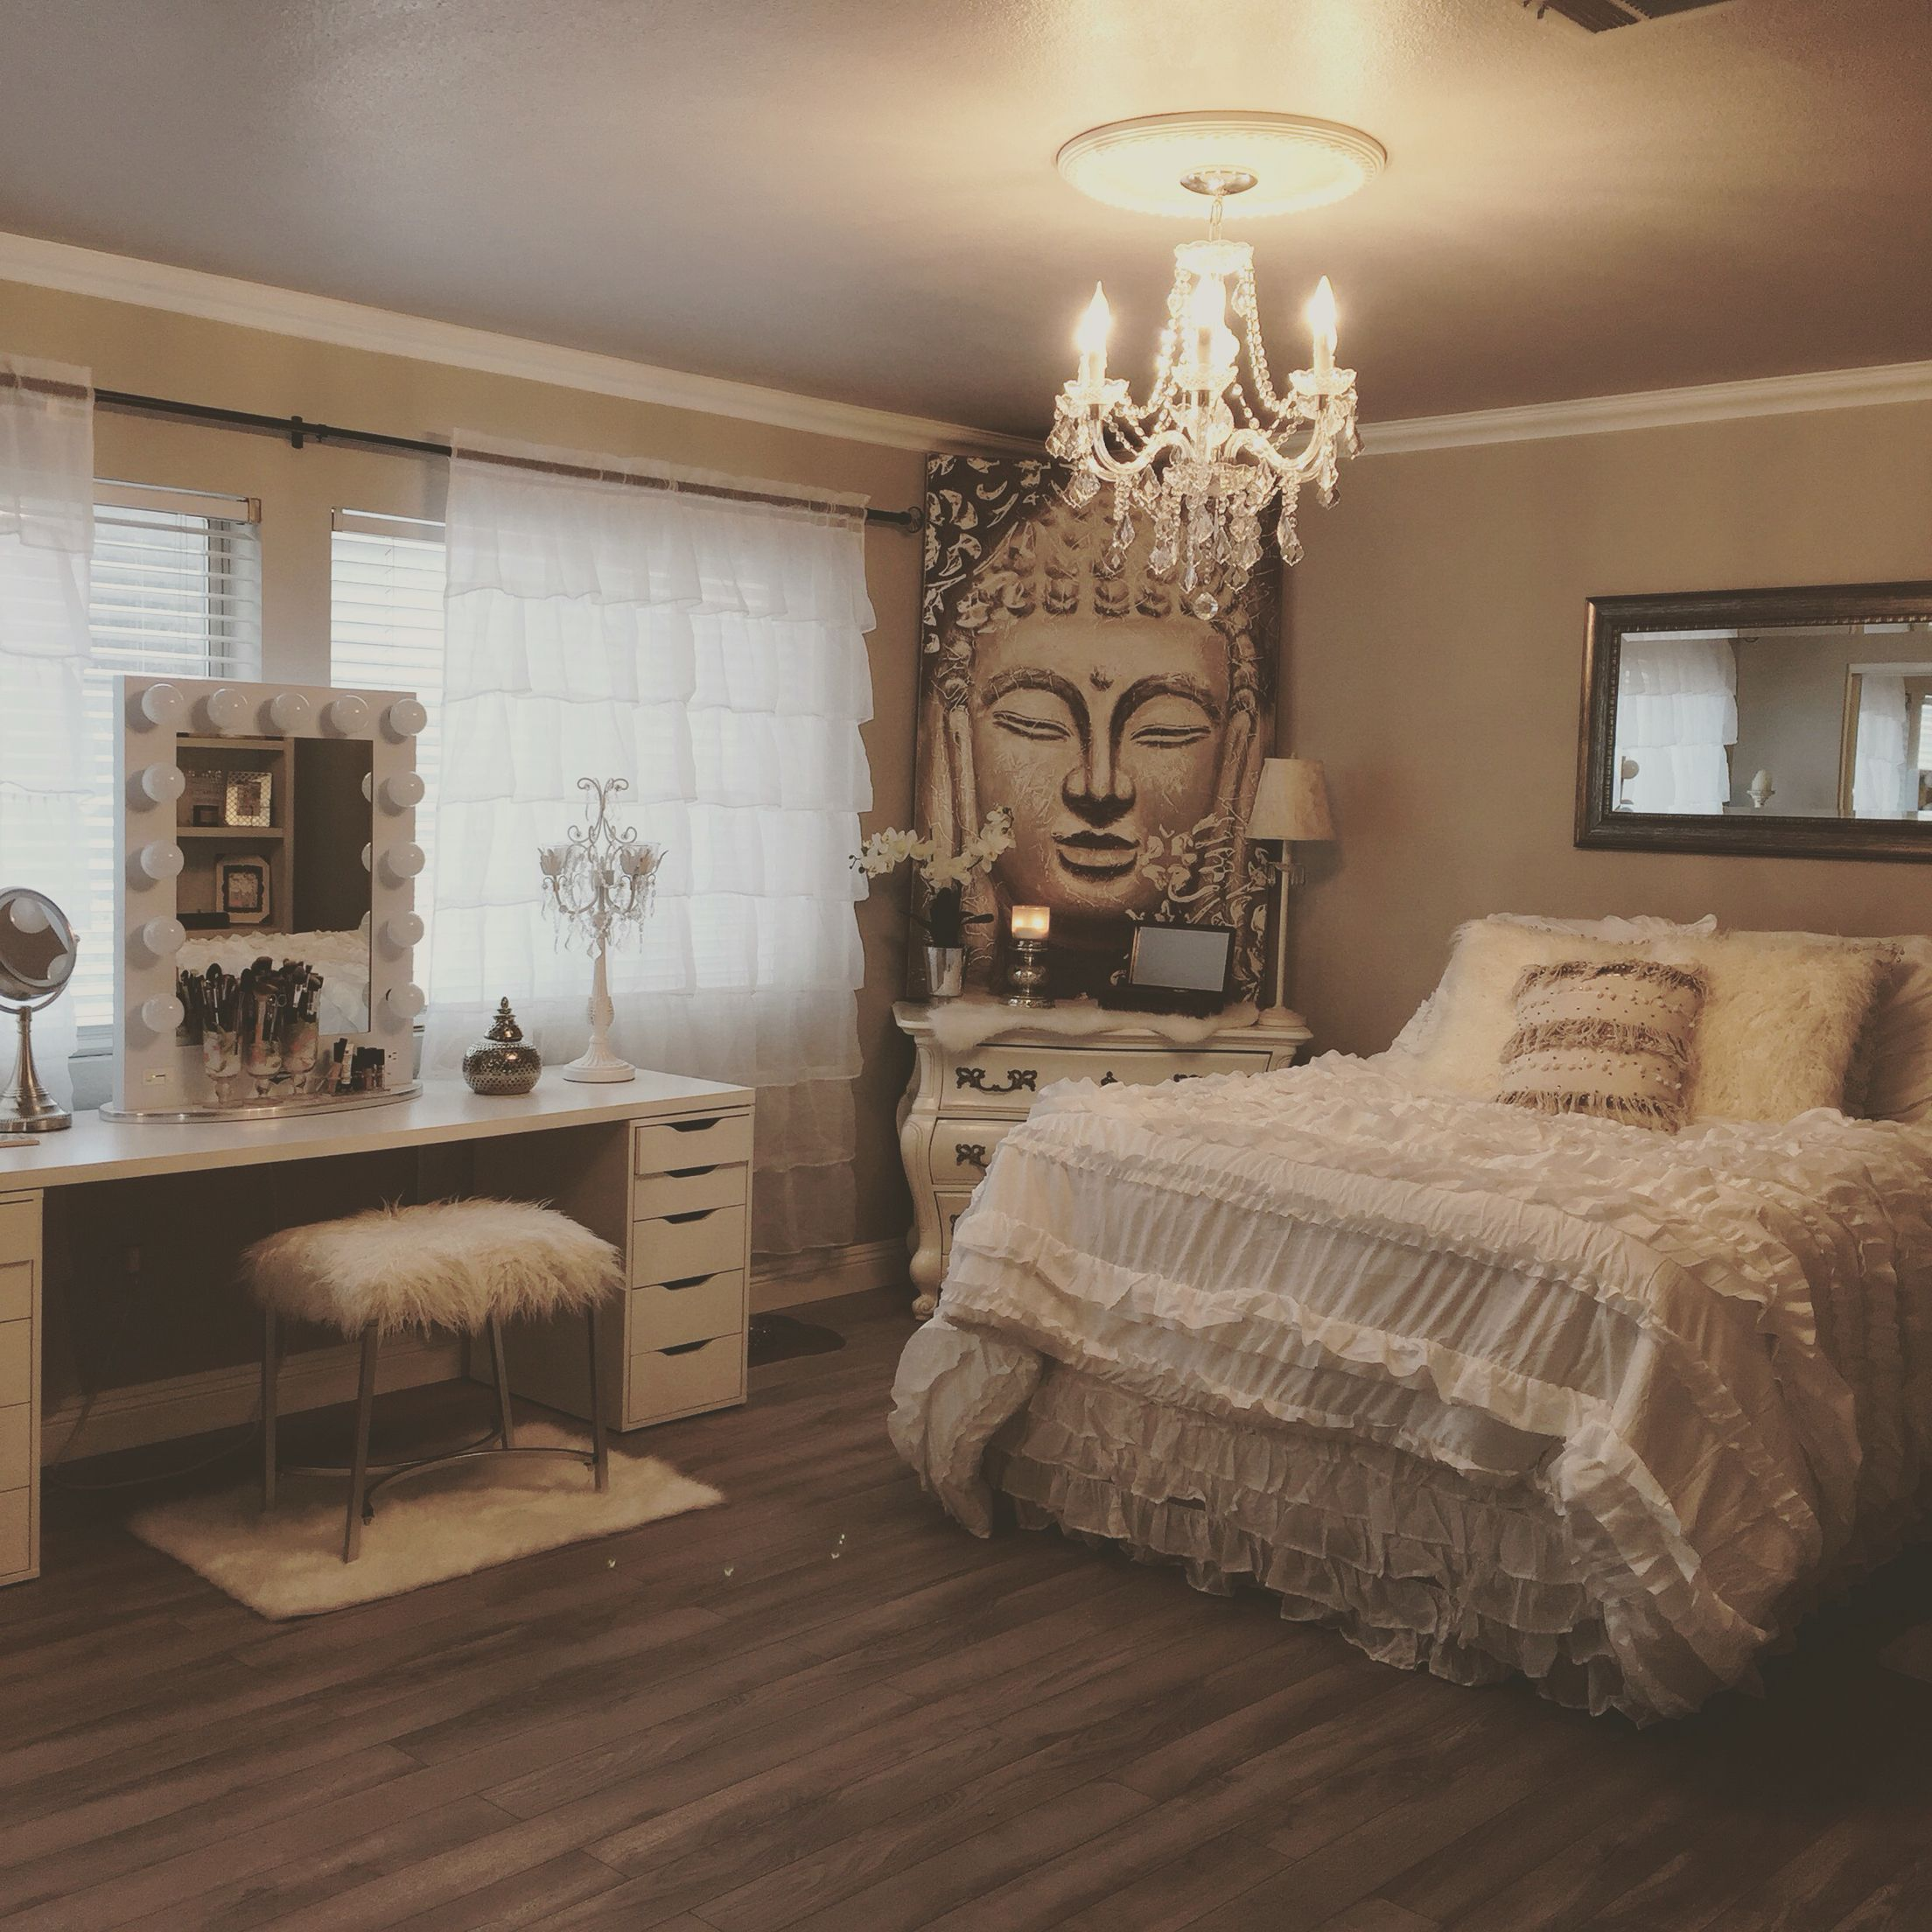 Shabby chic meets zen glam my new bedroom pinterest Zen bedroom ideas